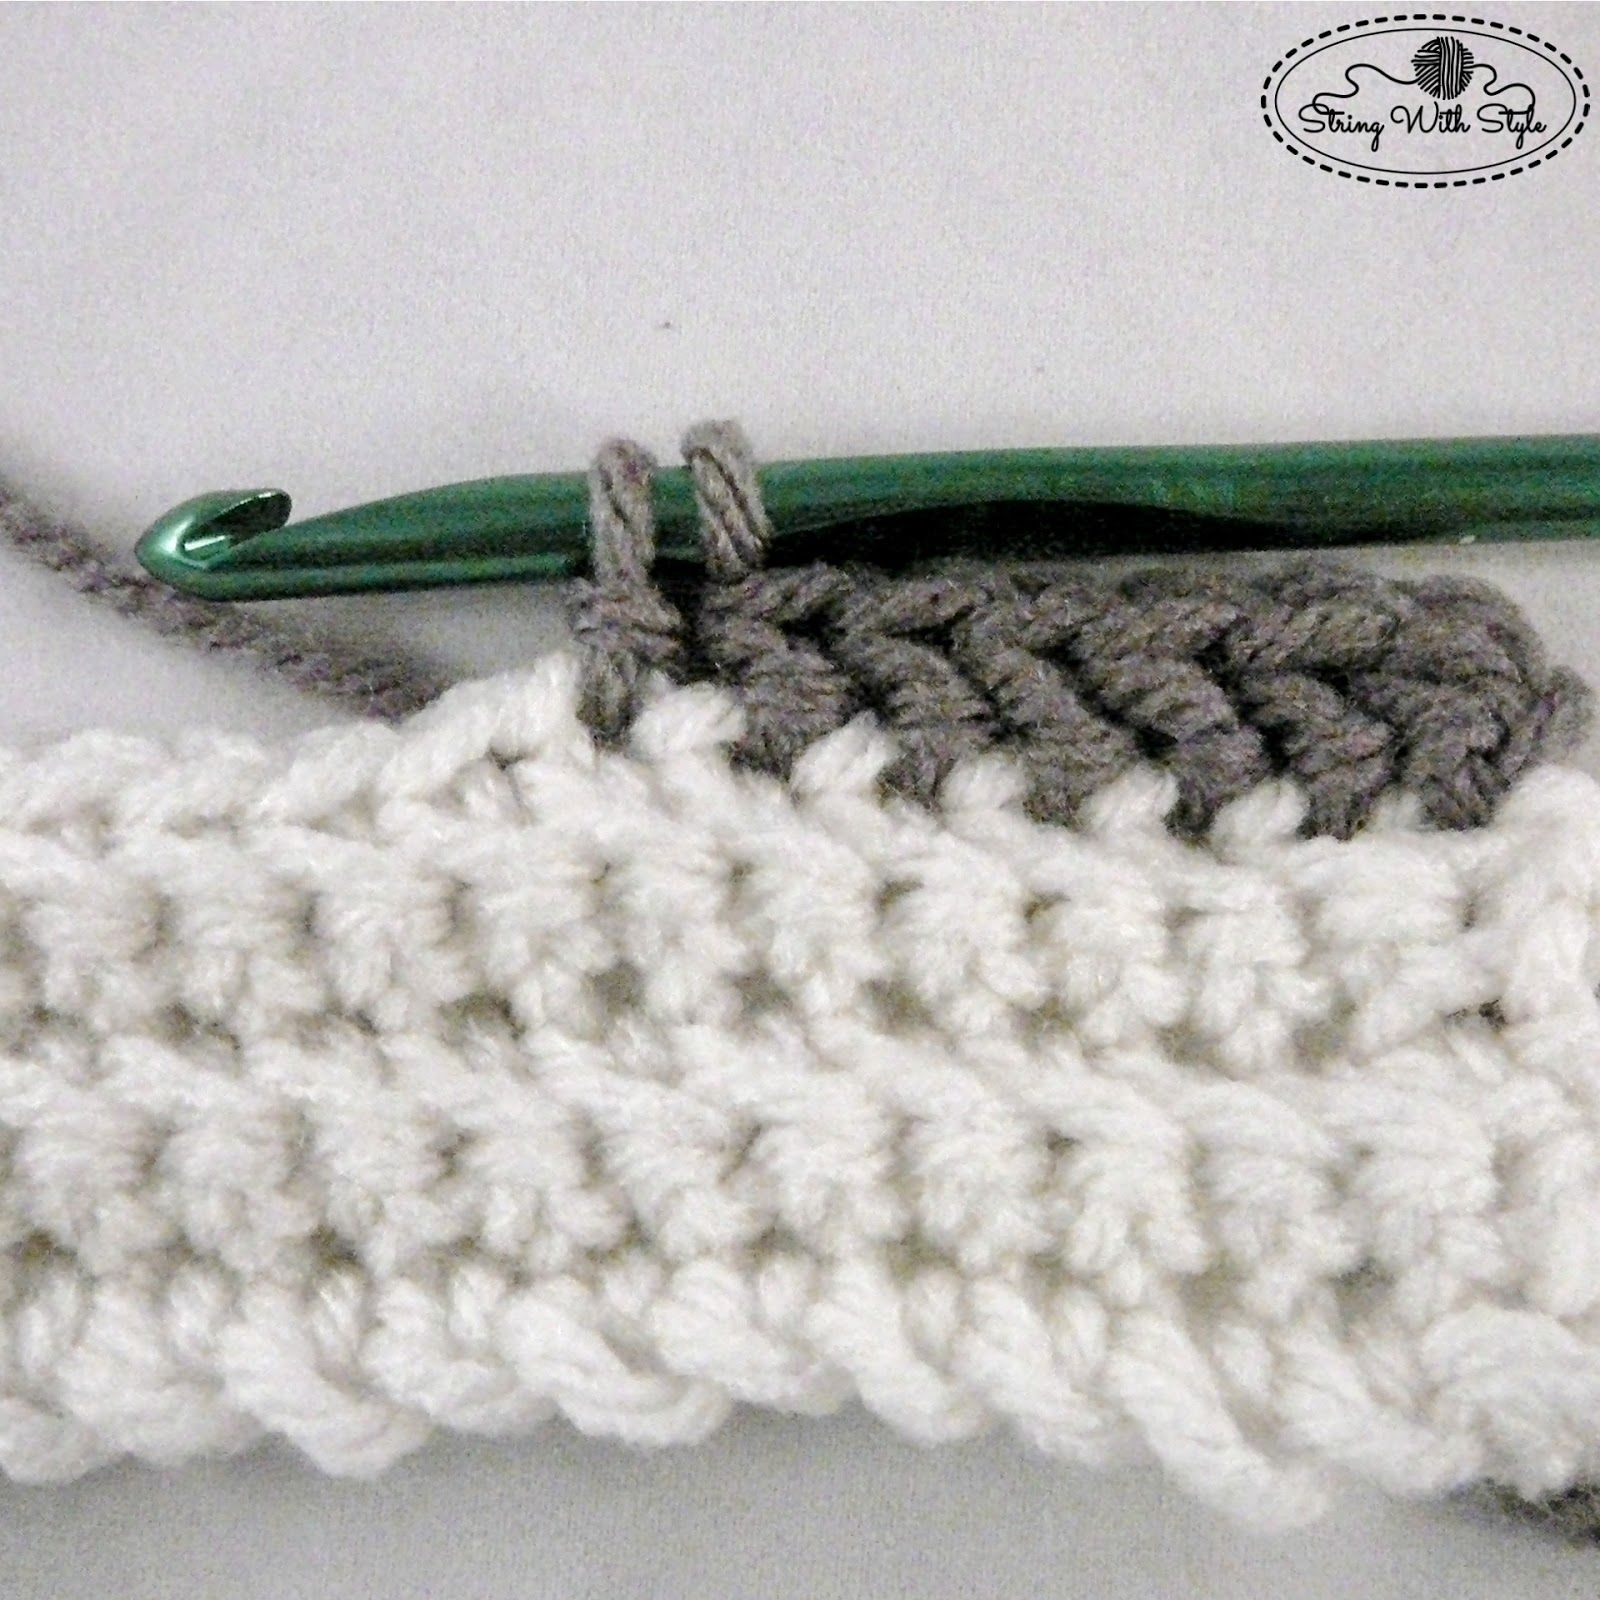 How to create a slanted hdc stitch - String With Style